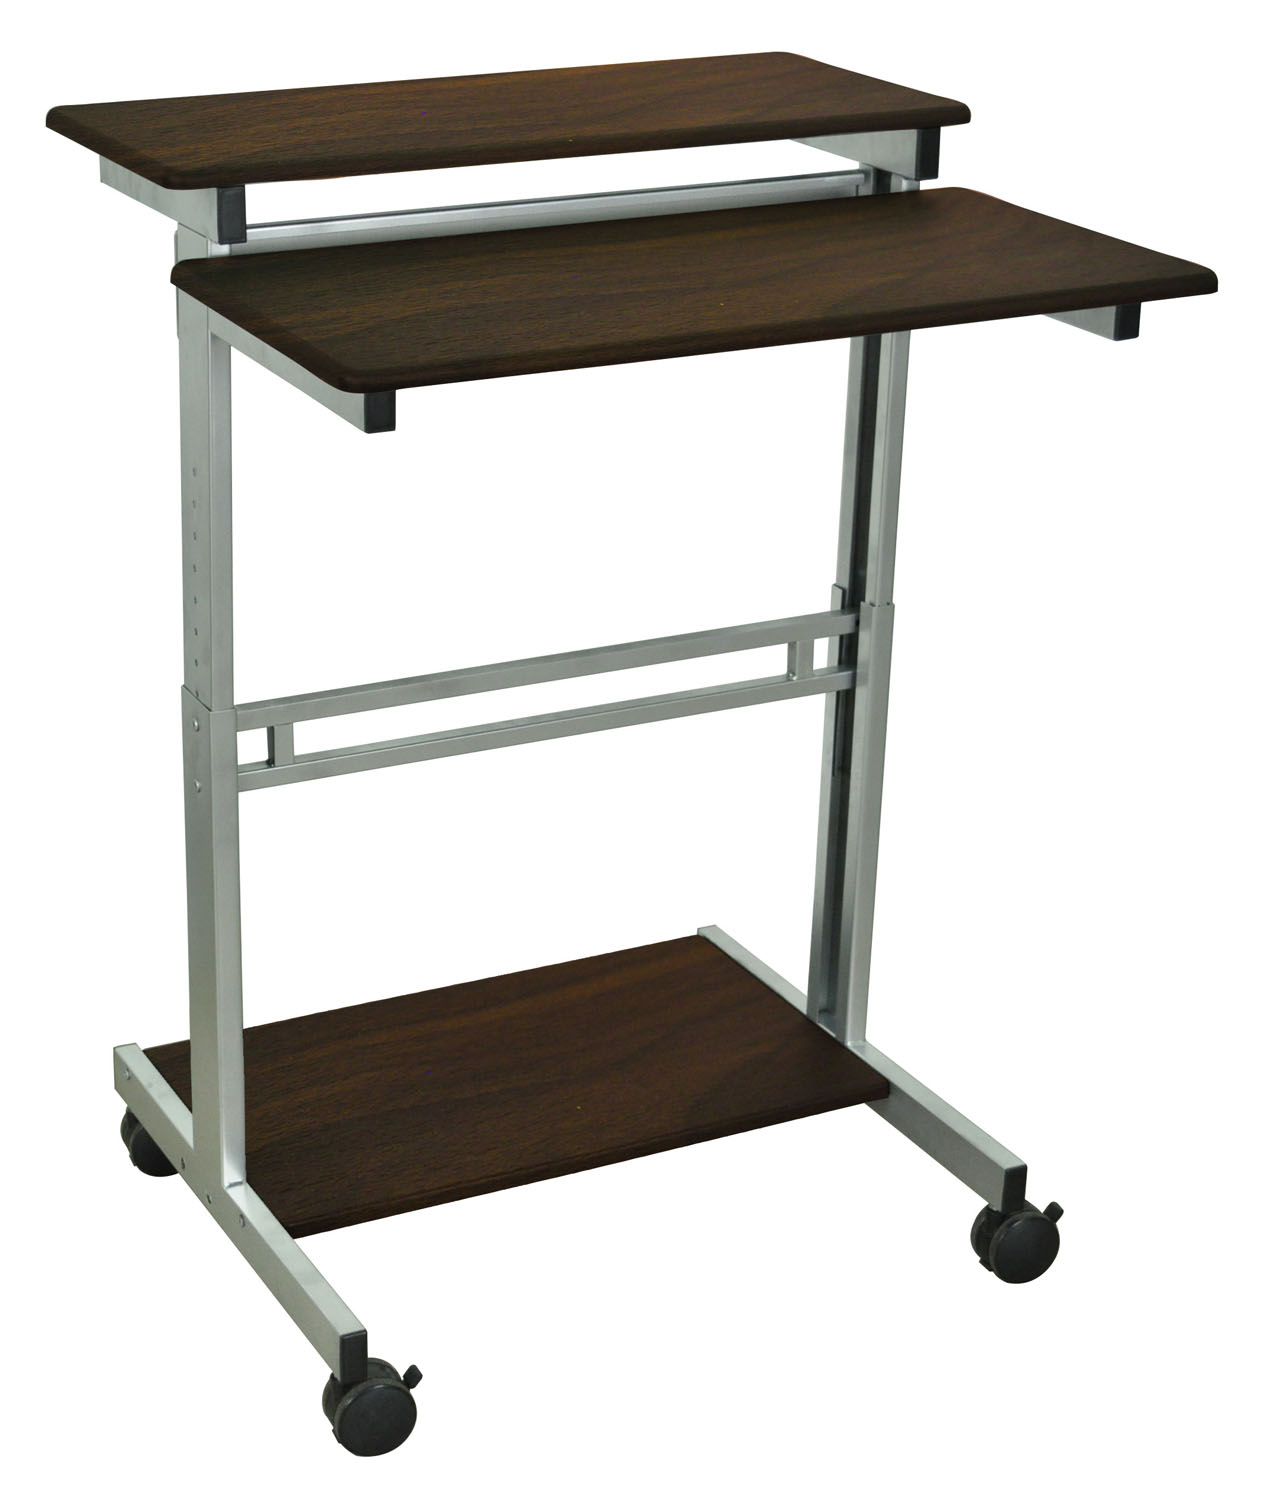 Offex 31.5 Home Office Computer Presentation Stand Cart With Silver Gray And Dark Walnut Shelves